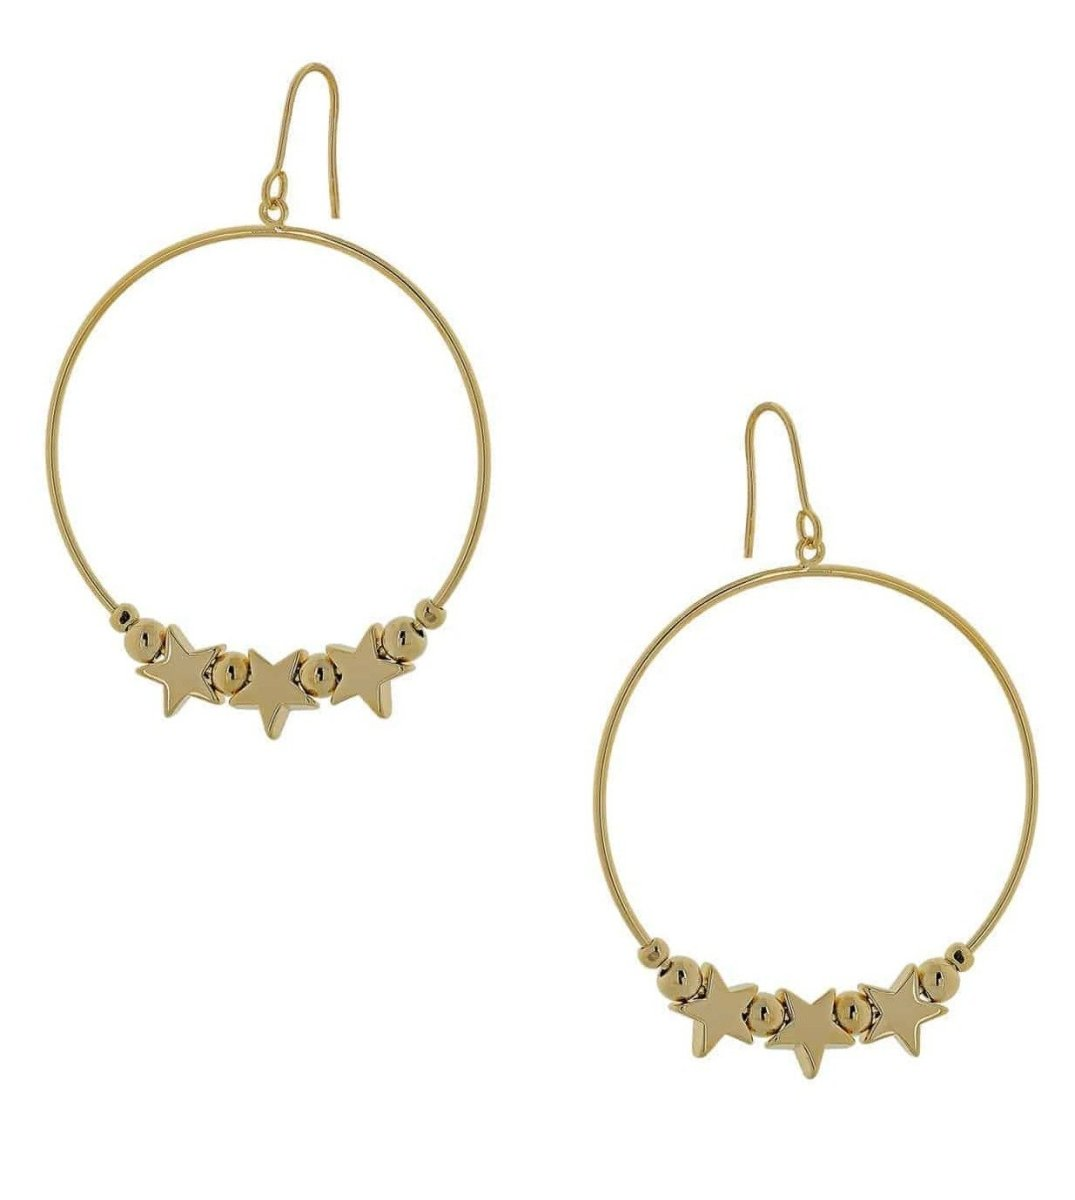 Visetti MS-WSC046G Earrings Rings Gold plated Stars - Goldy Jewelry Store